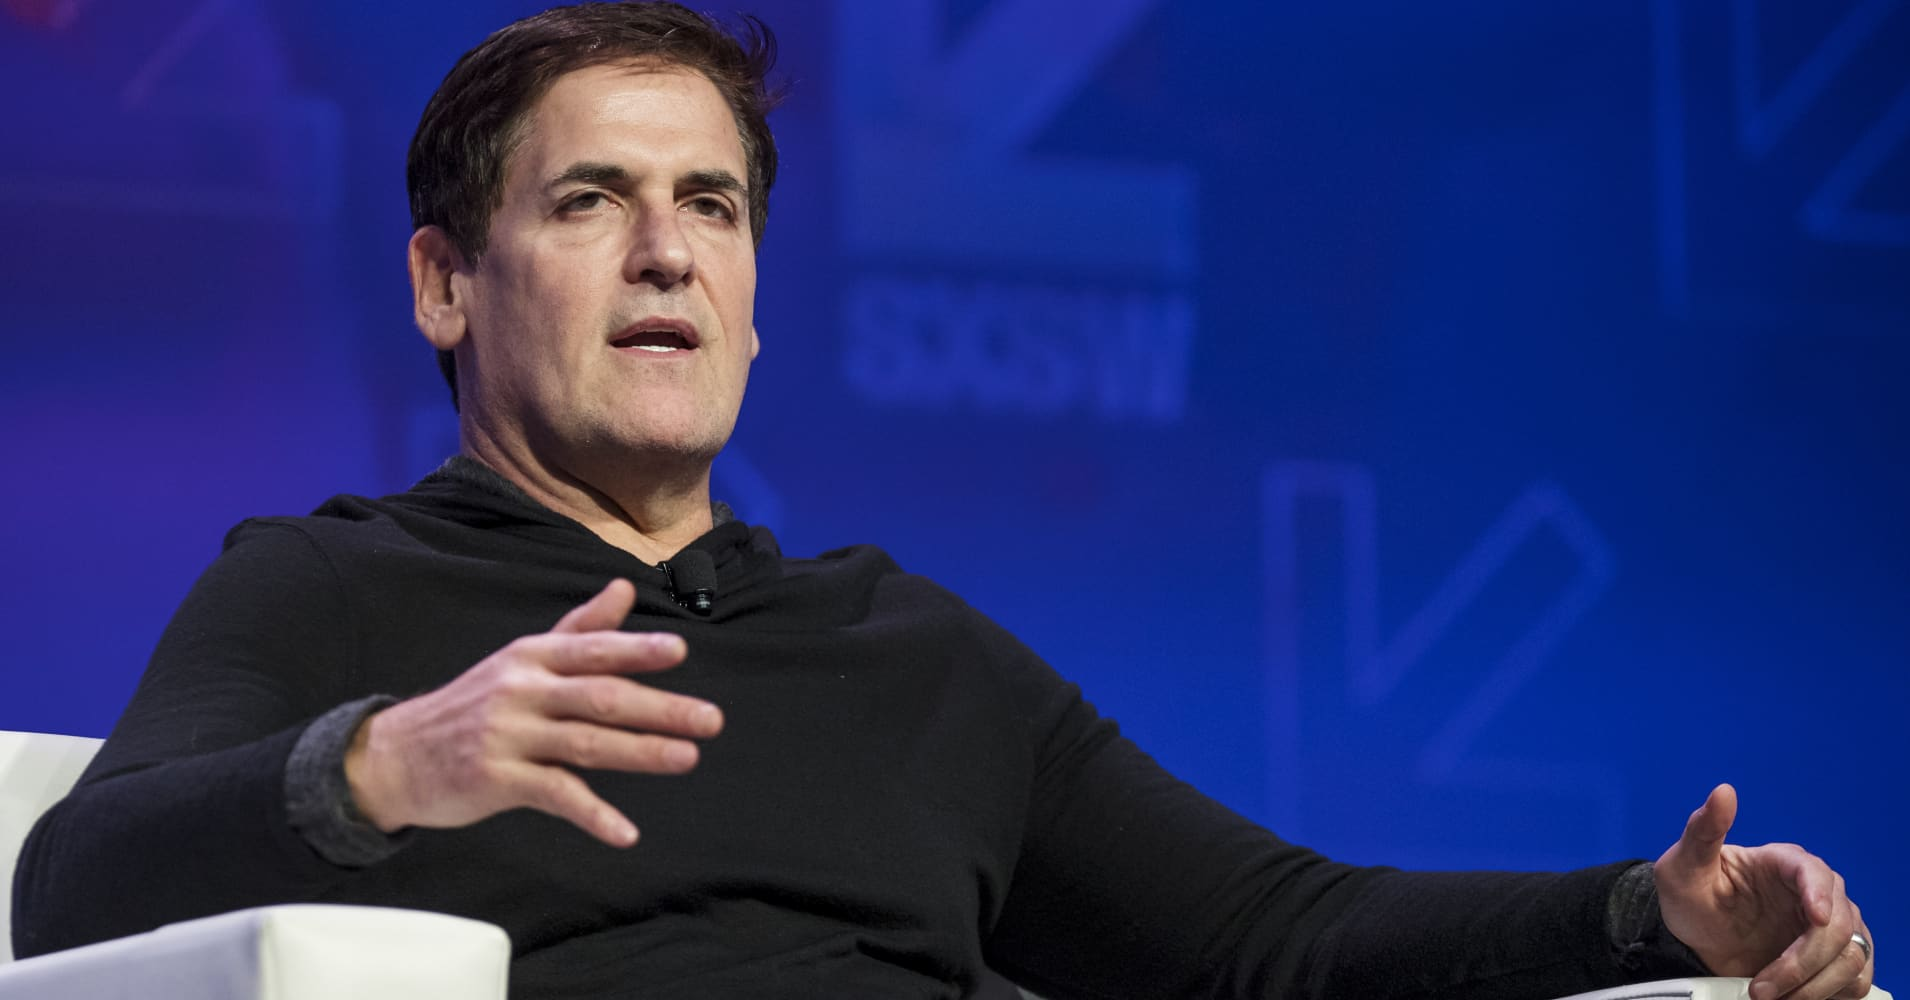 Mark Cuban, Bill Gates and others on what to study if you want a high-paying job in the future